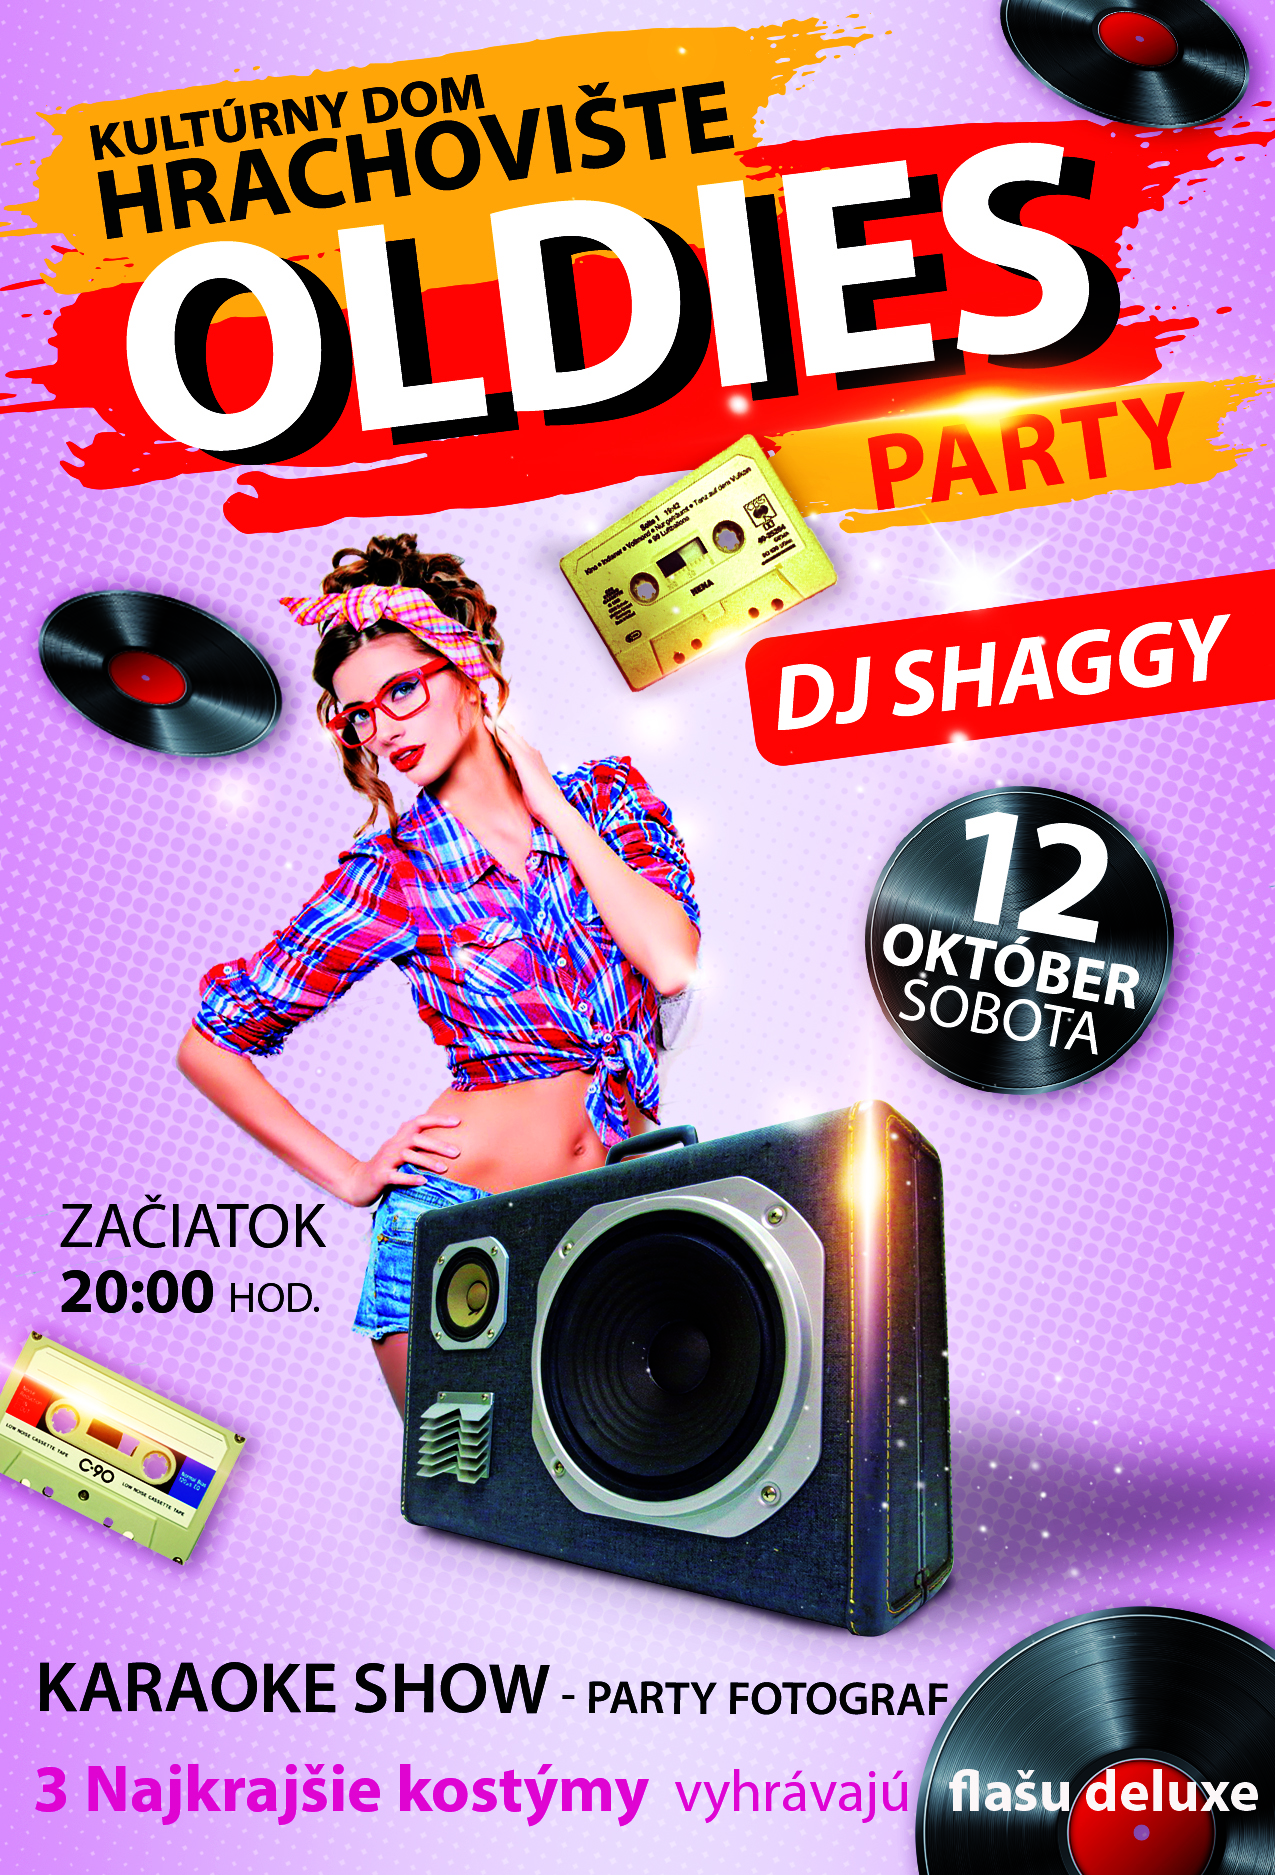 oldies party hrachoviste 2019 plagát